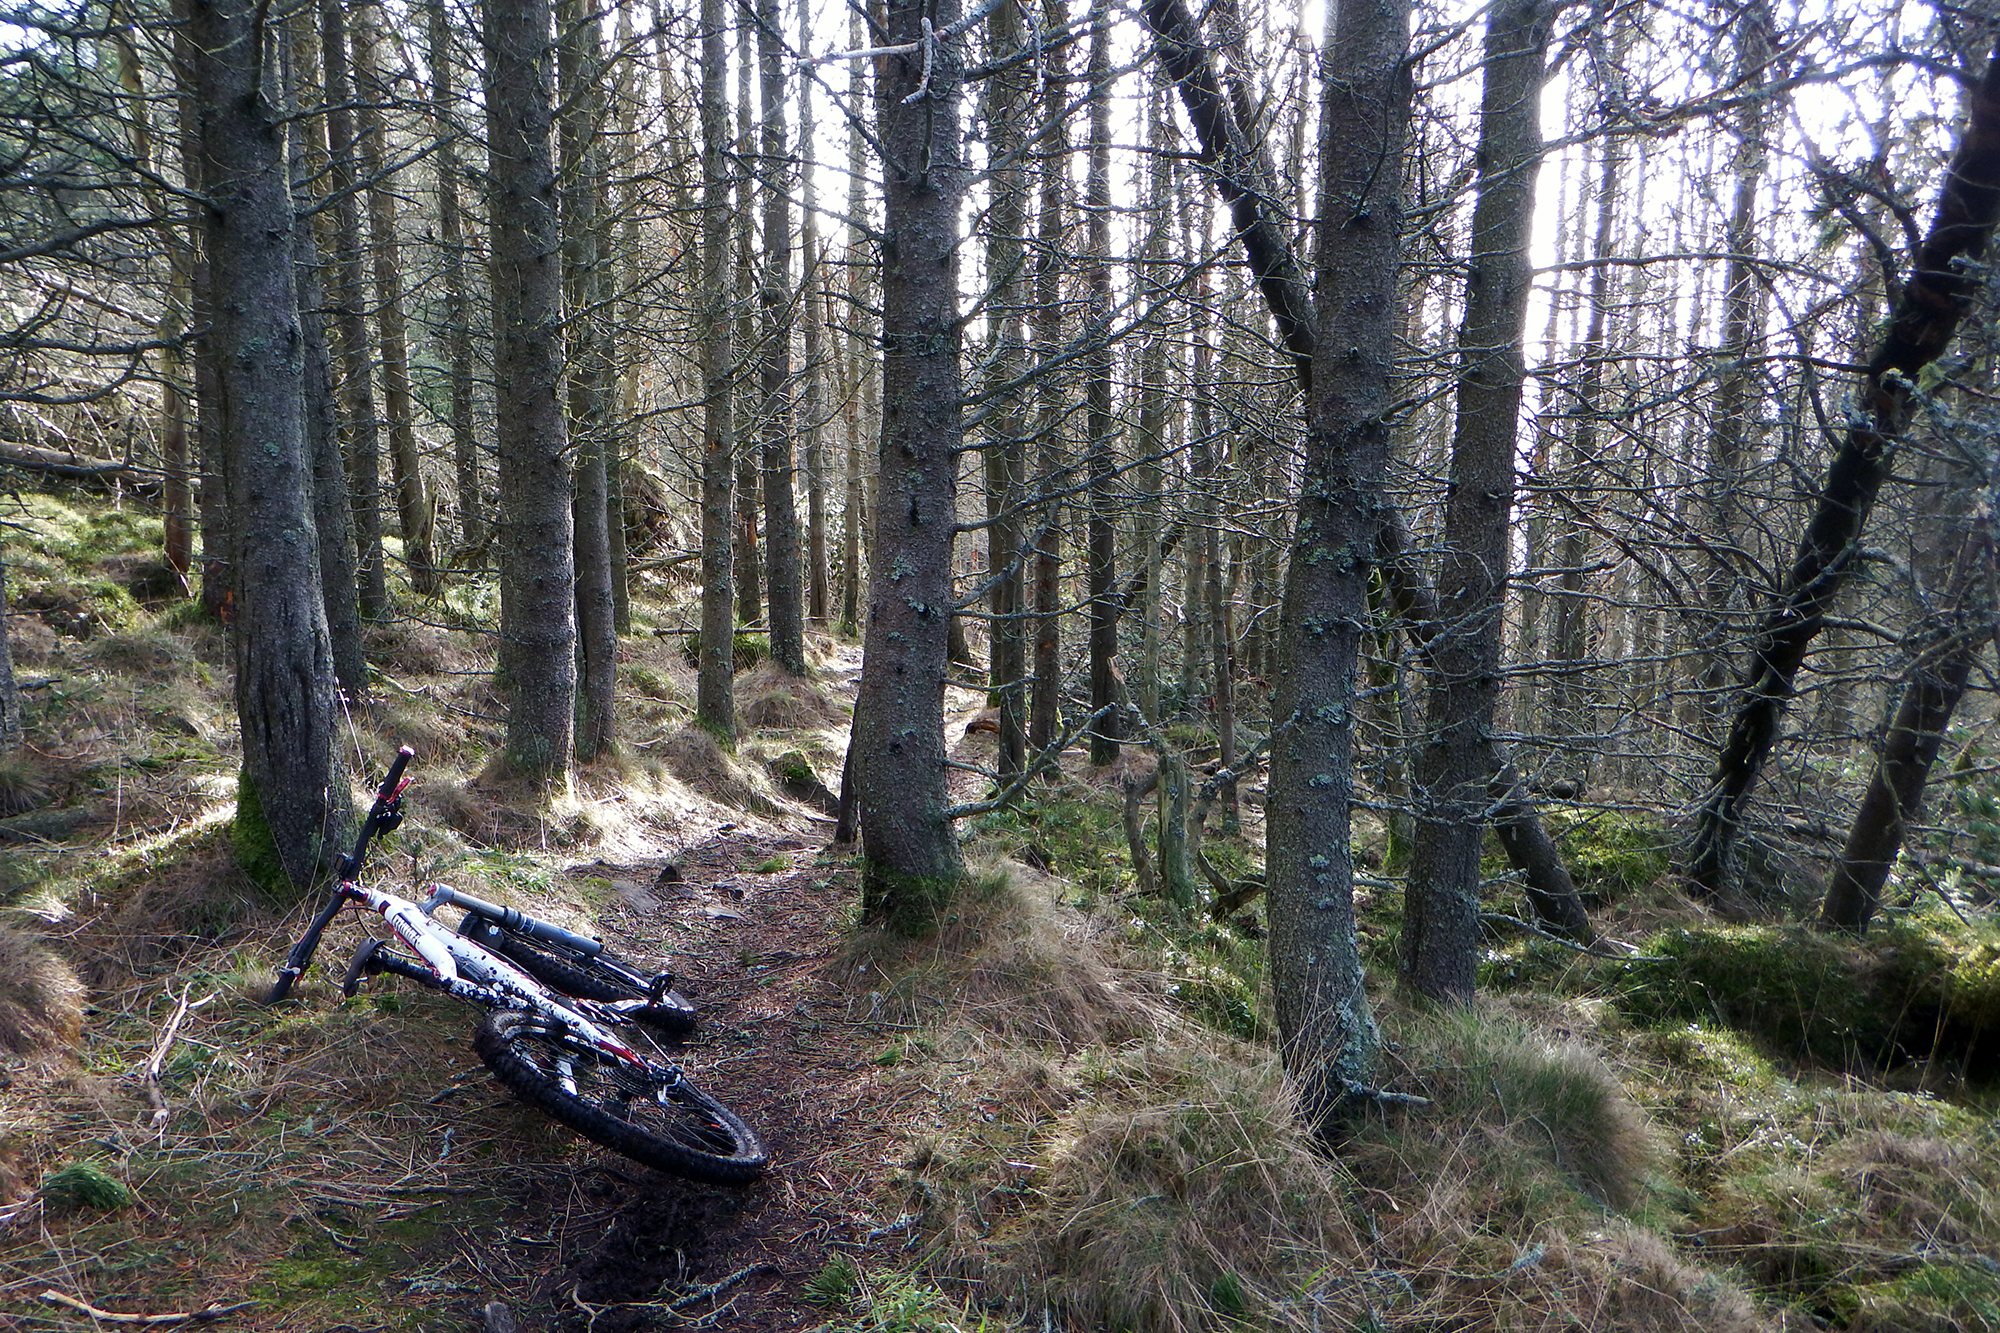 Stravaiging Enduro Scolty February 10